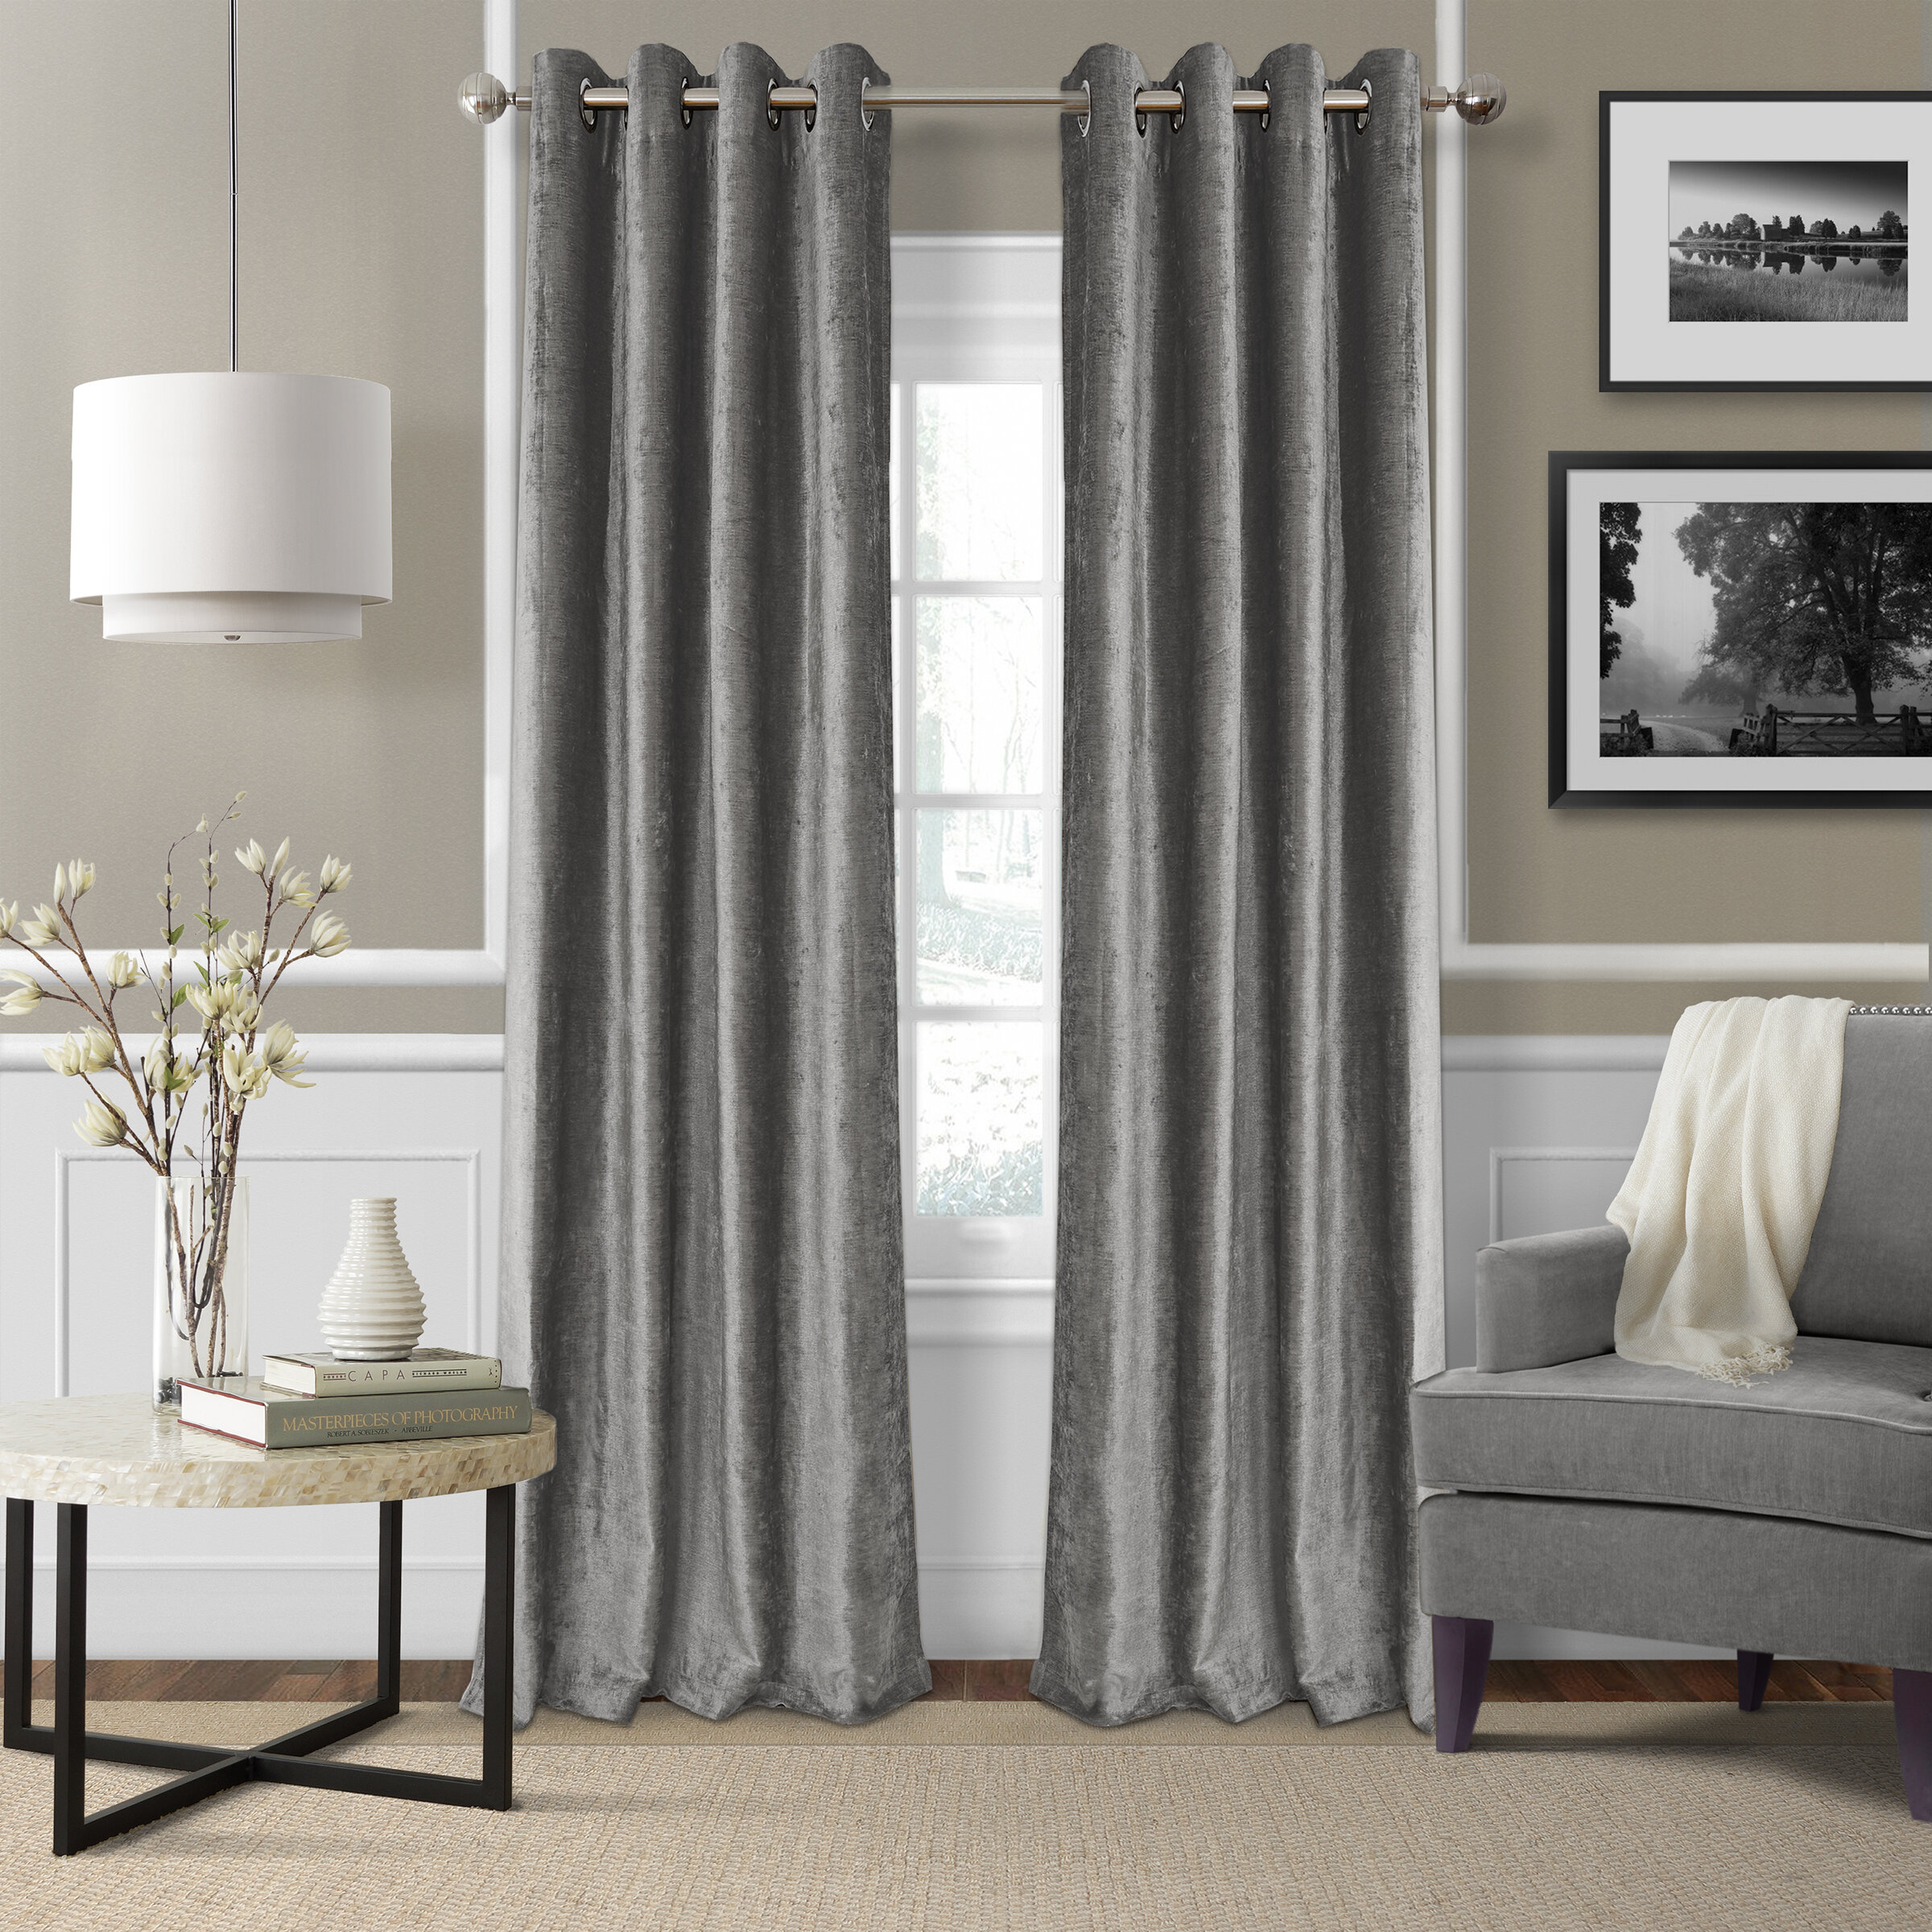 Victoria Velvet Solid Blackout Thermal Grommet Single Curtain Panel With Regard To Velvet Dream Silver Curtain Panel Pairs (View 14 of 31)